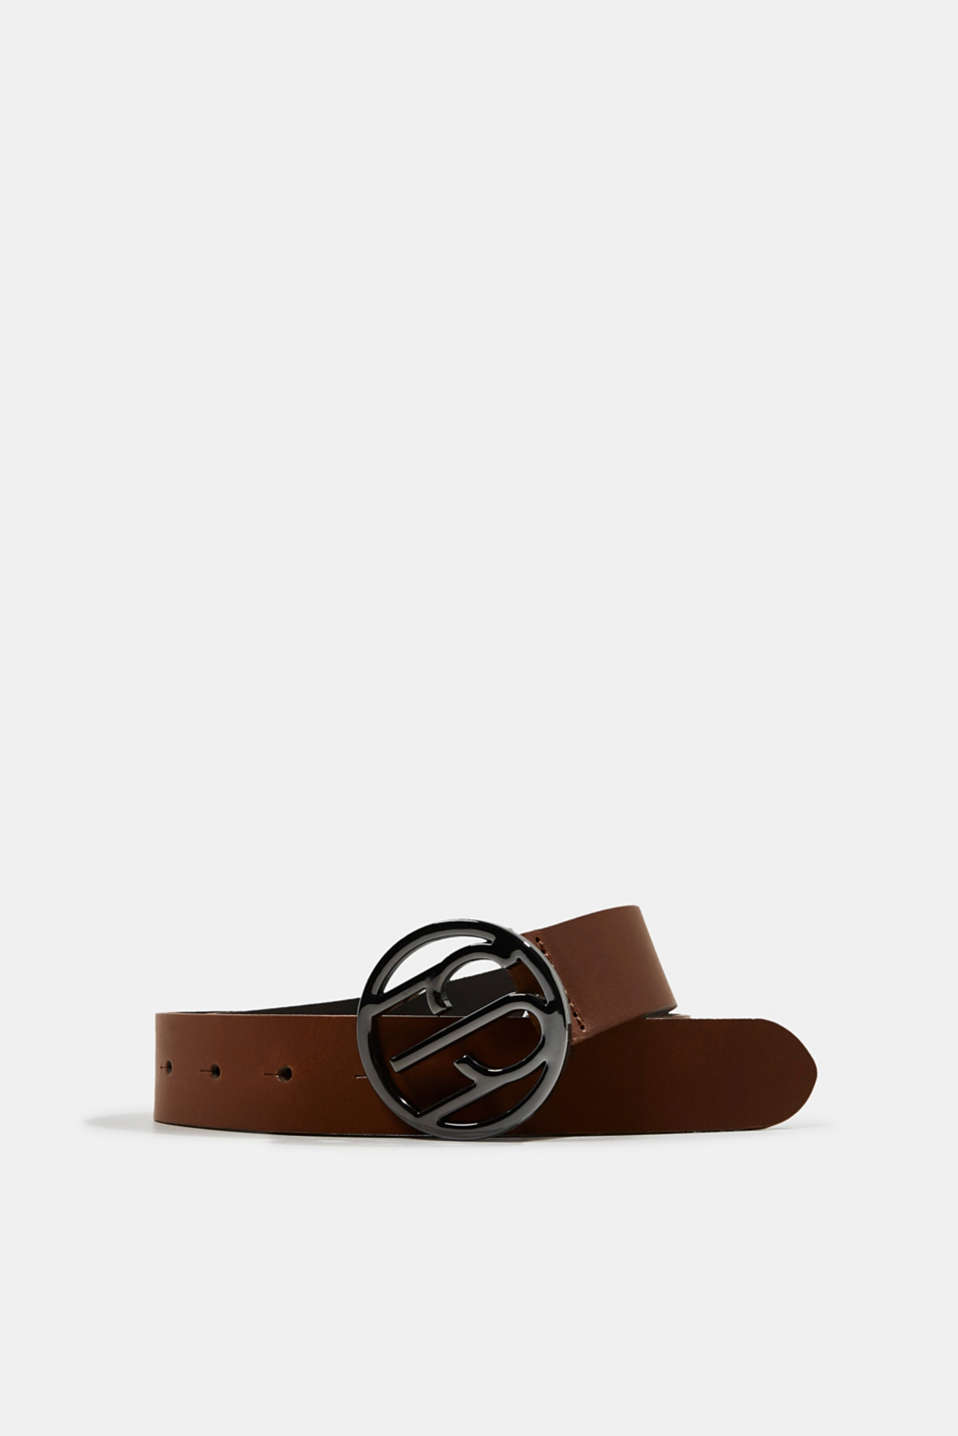 Esprit - Made of leather: belt with logo buckle